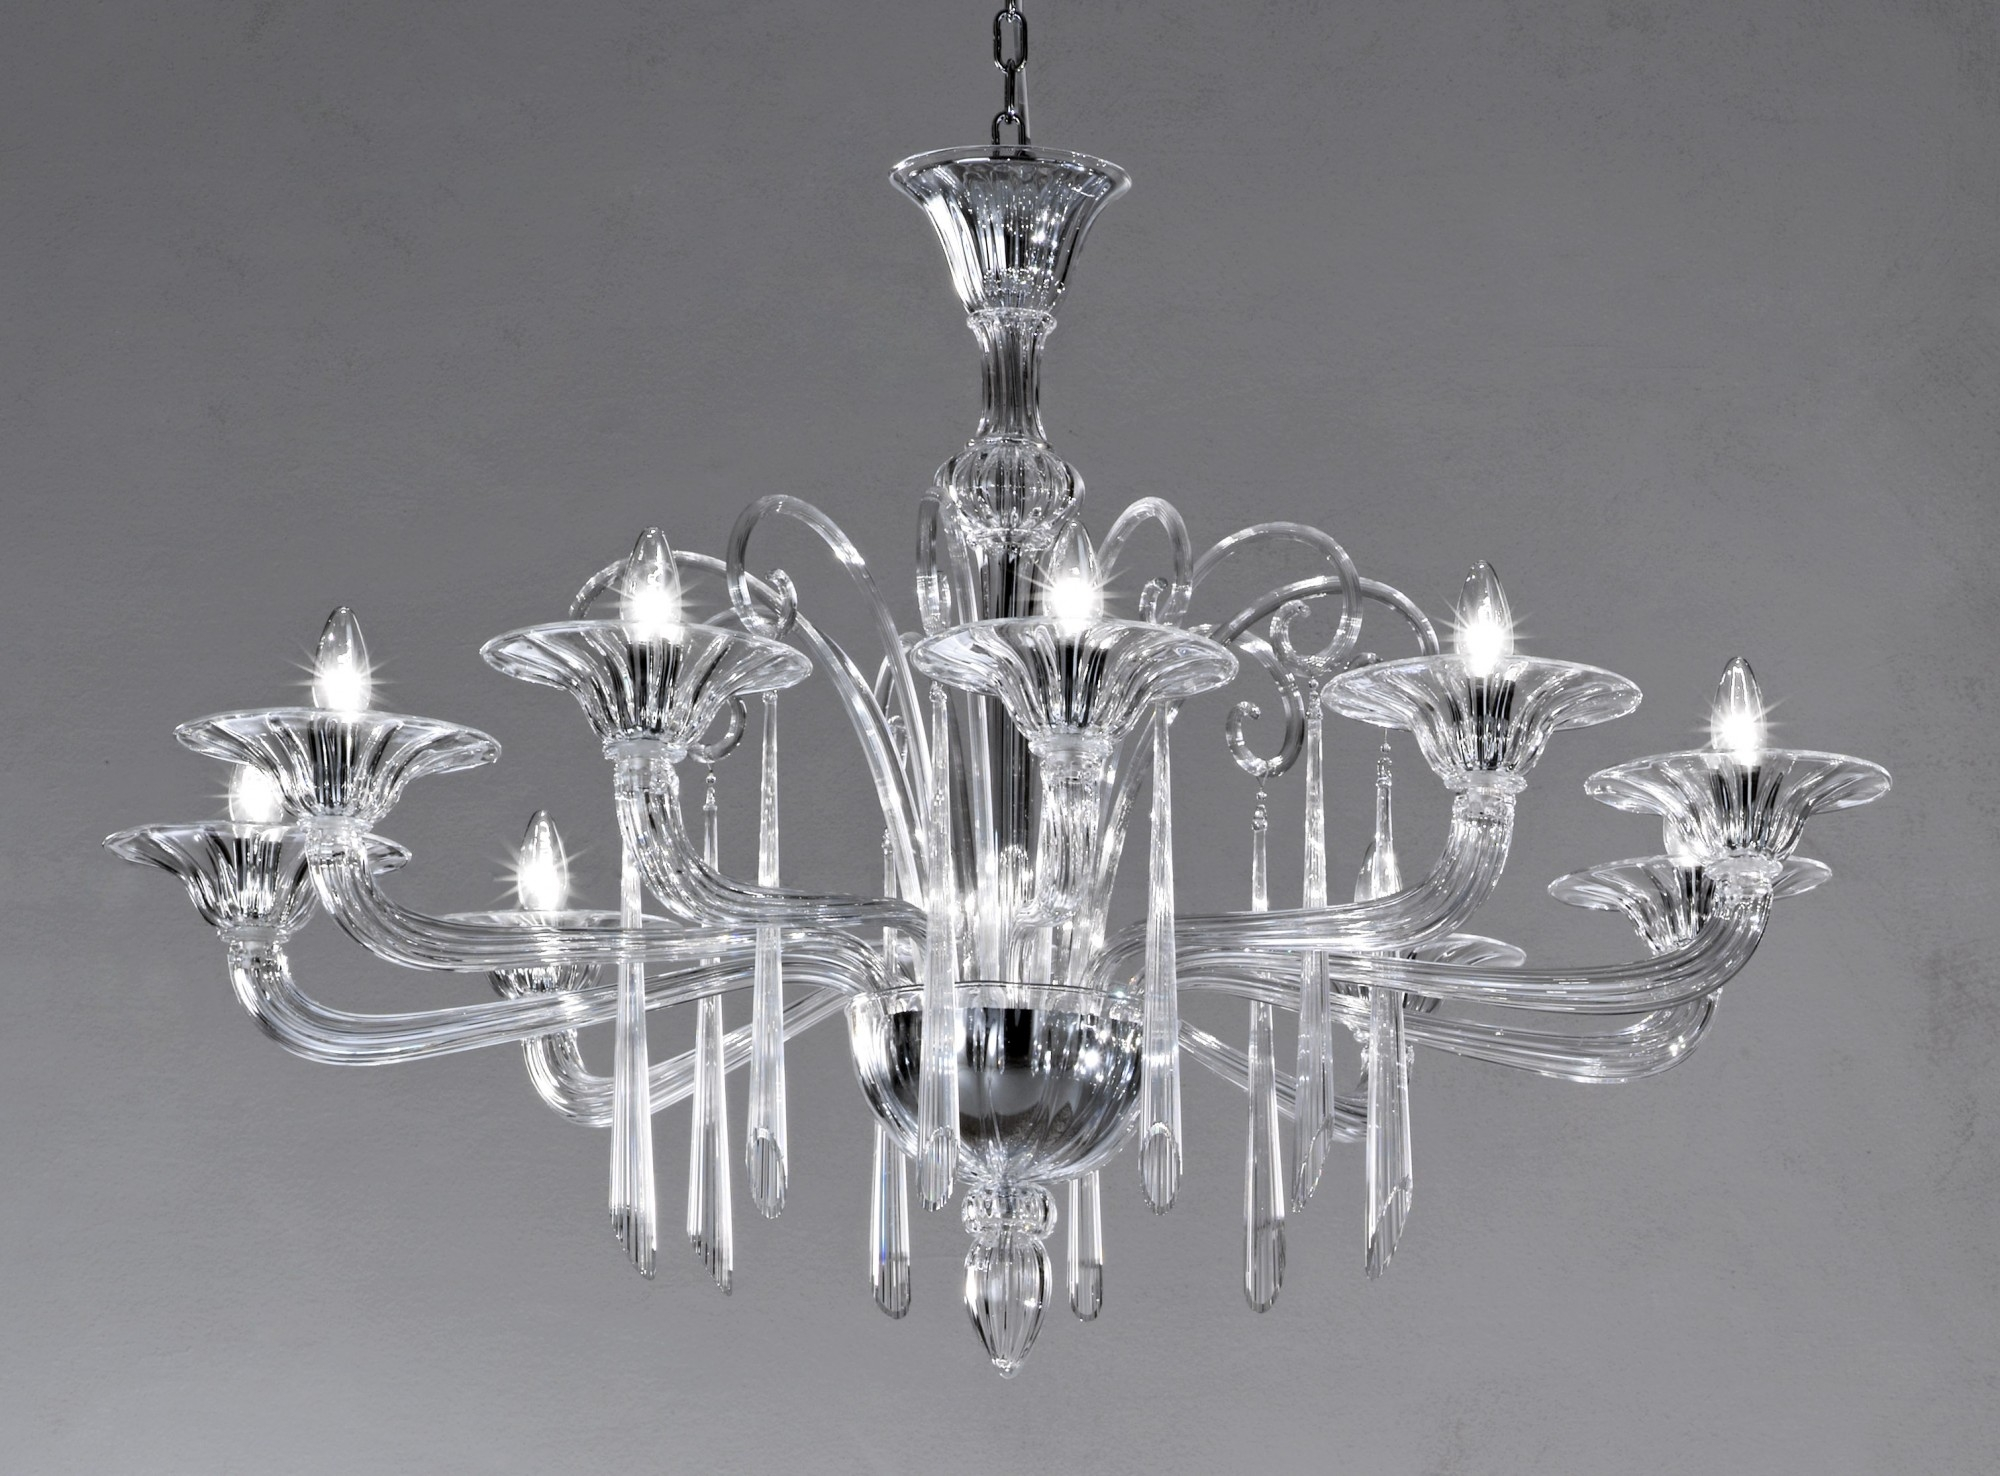 Crystal Clear Modern Murano Chandelier Dml6012k10 Murano Imports Intended For Murano Chandelier (Image 3 of 15)